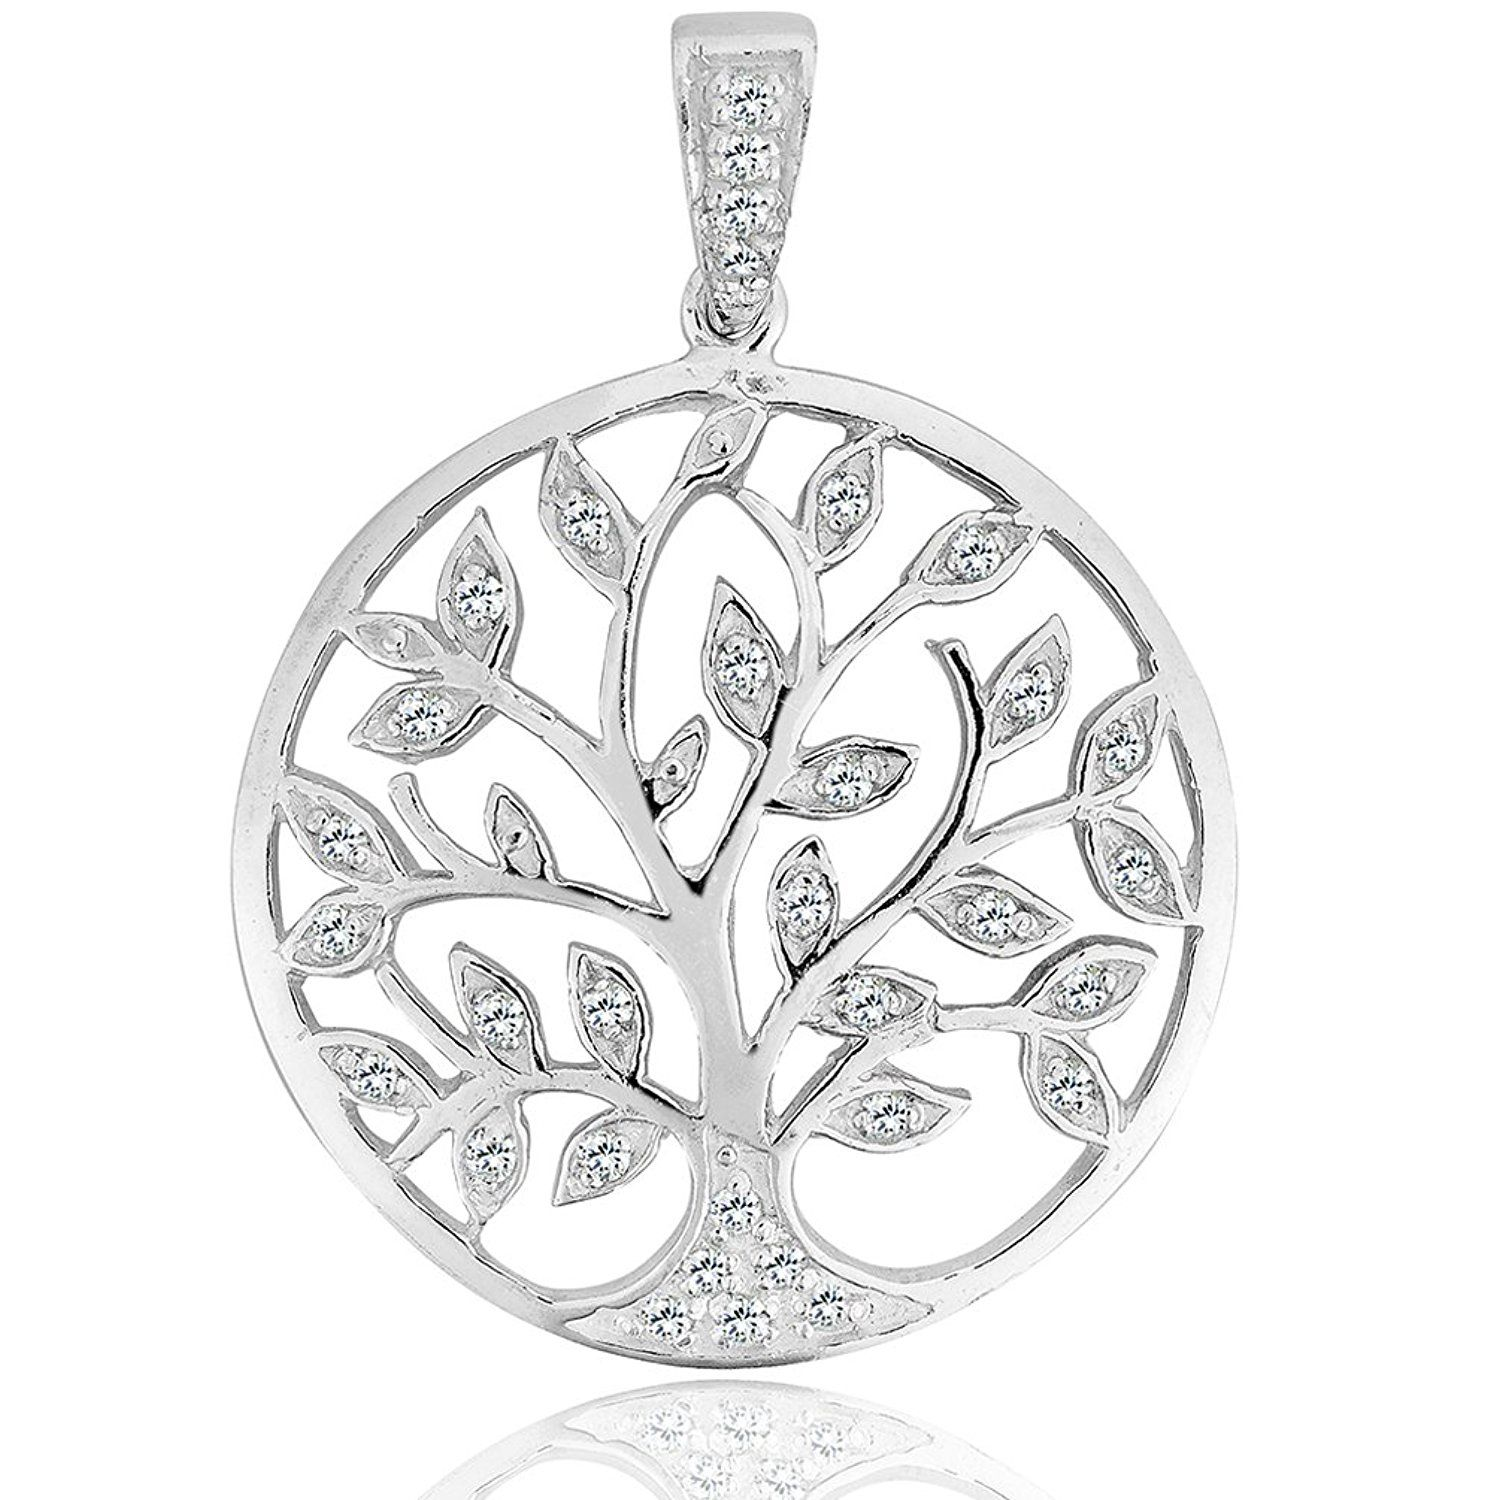 DTPsilver - 925 Sterling Silver Earrings Celtic Tree of Life Design IZ5ugbey